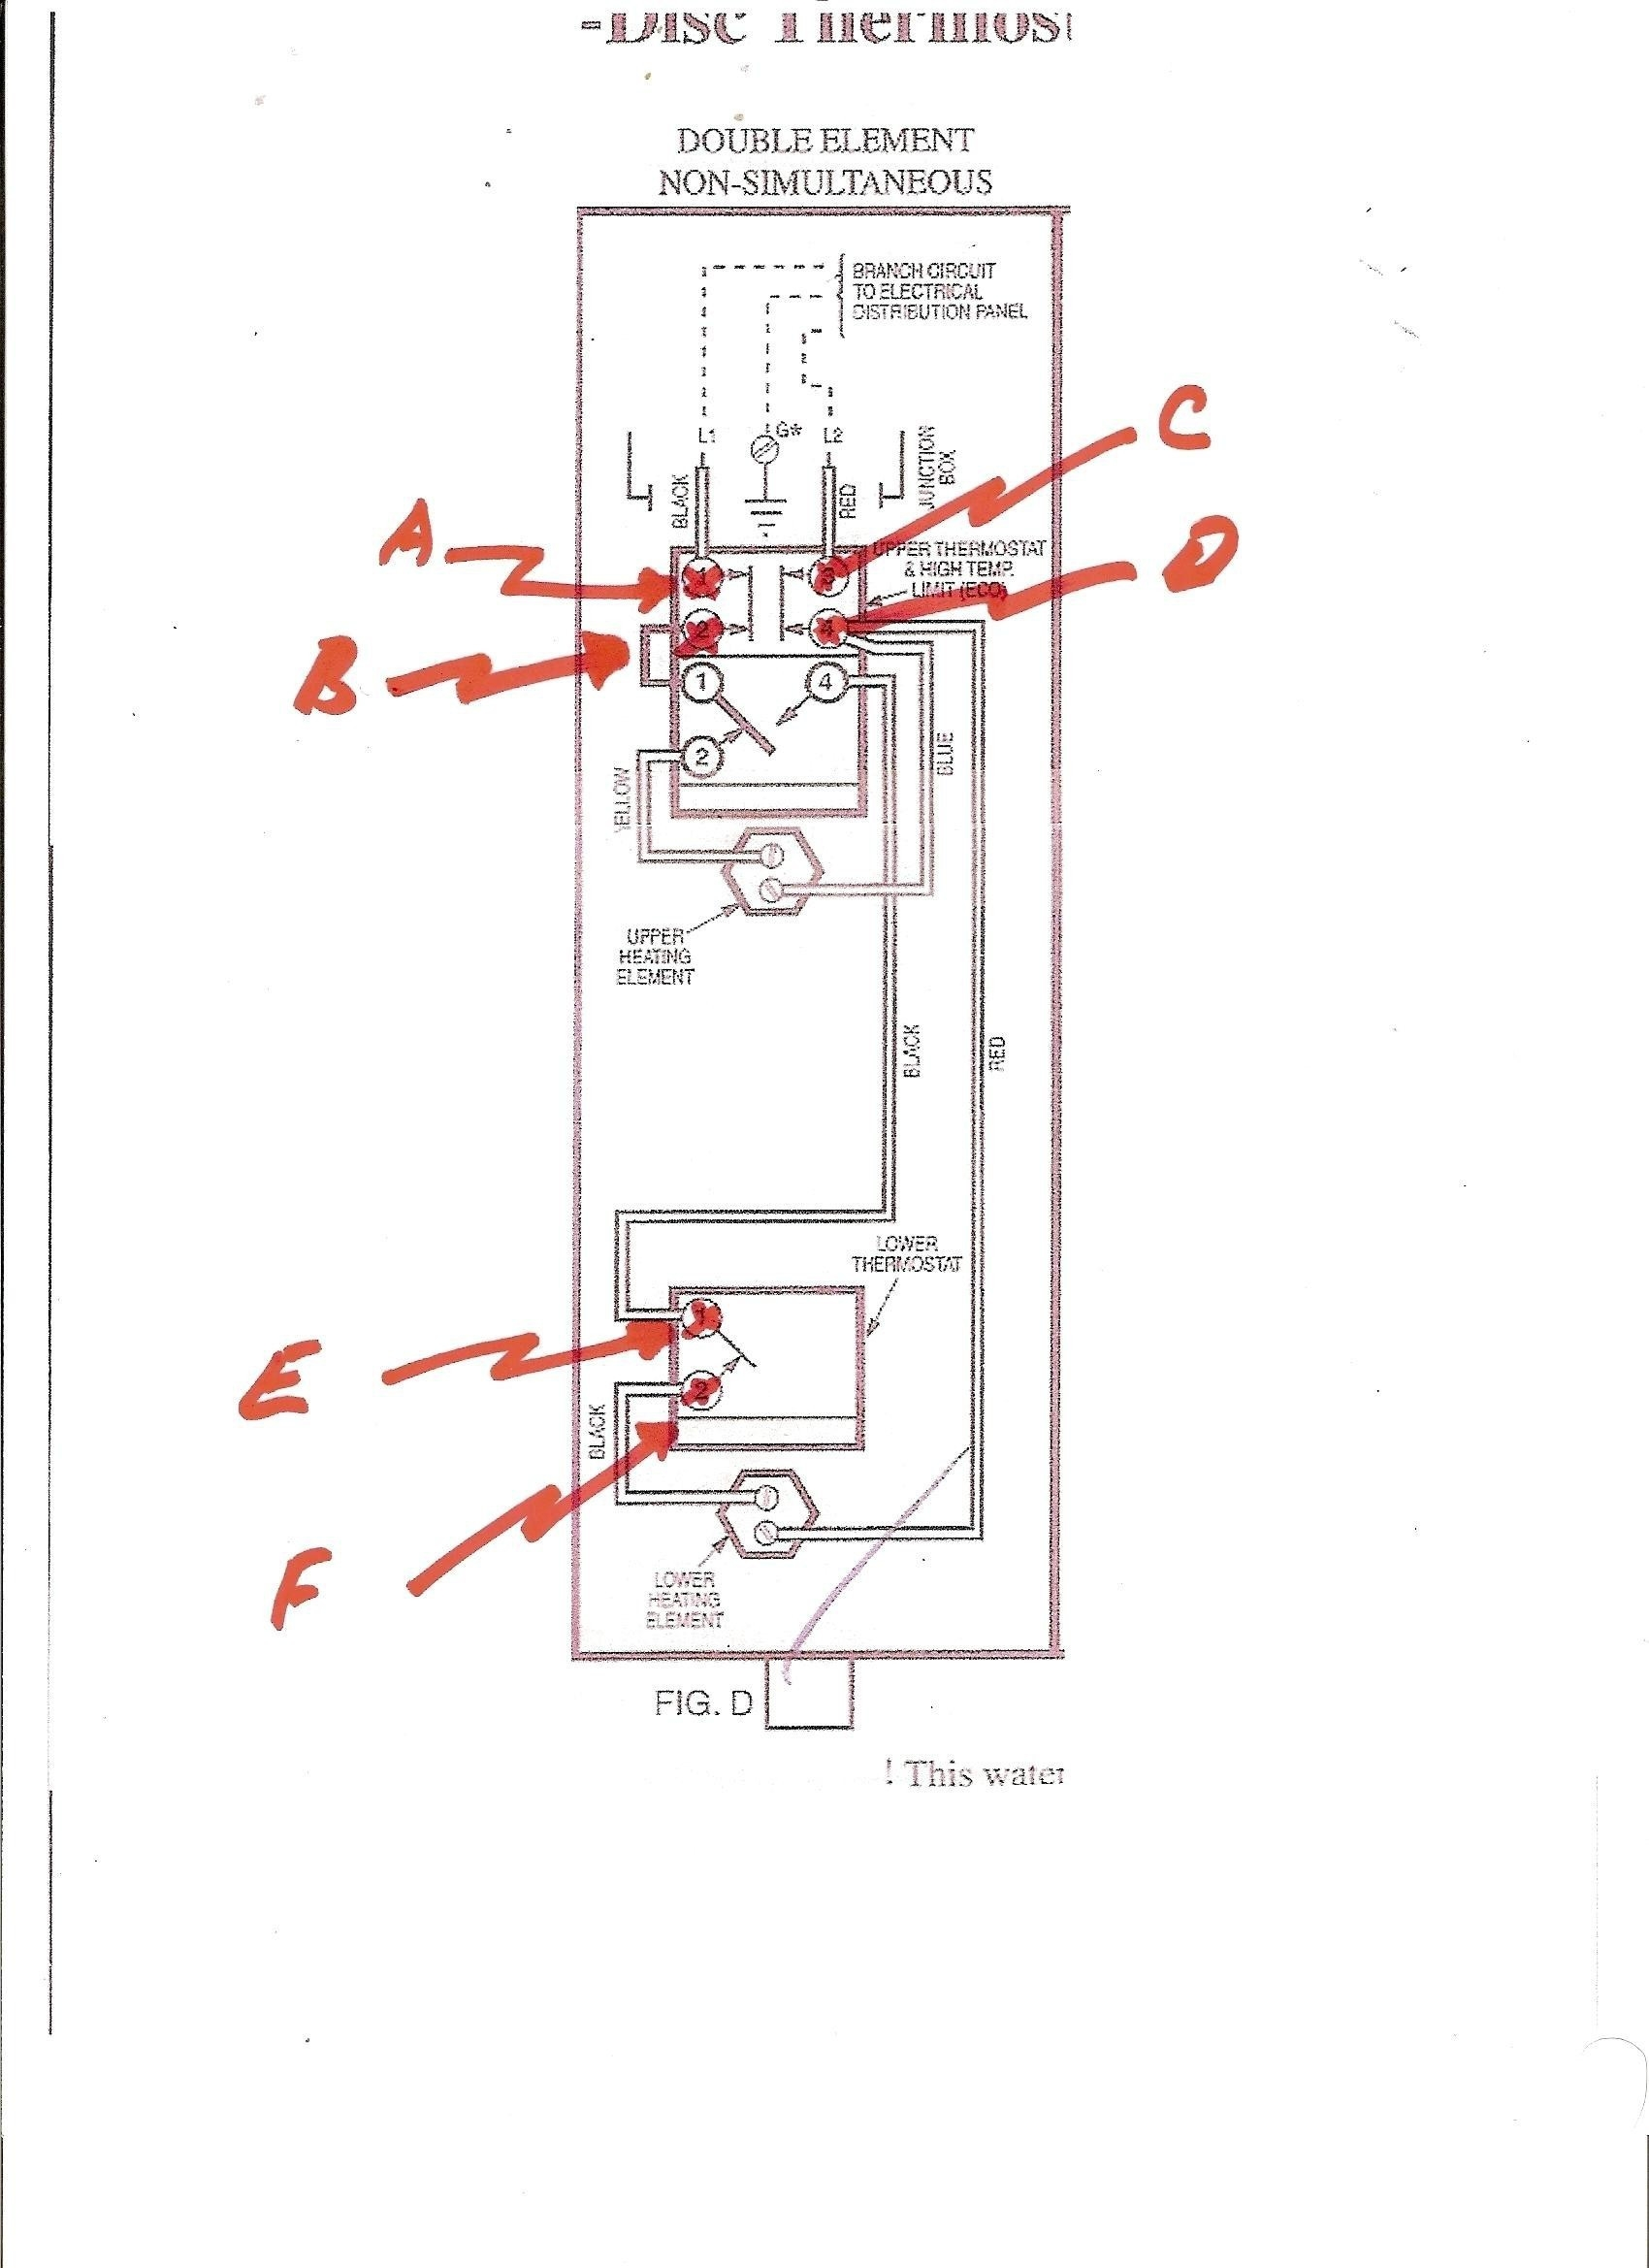 for a rheem tankless water heater wiring diagram rheem electric water heater wiring diagram | free wiring ... rheem hot water heater wiring diagram